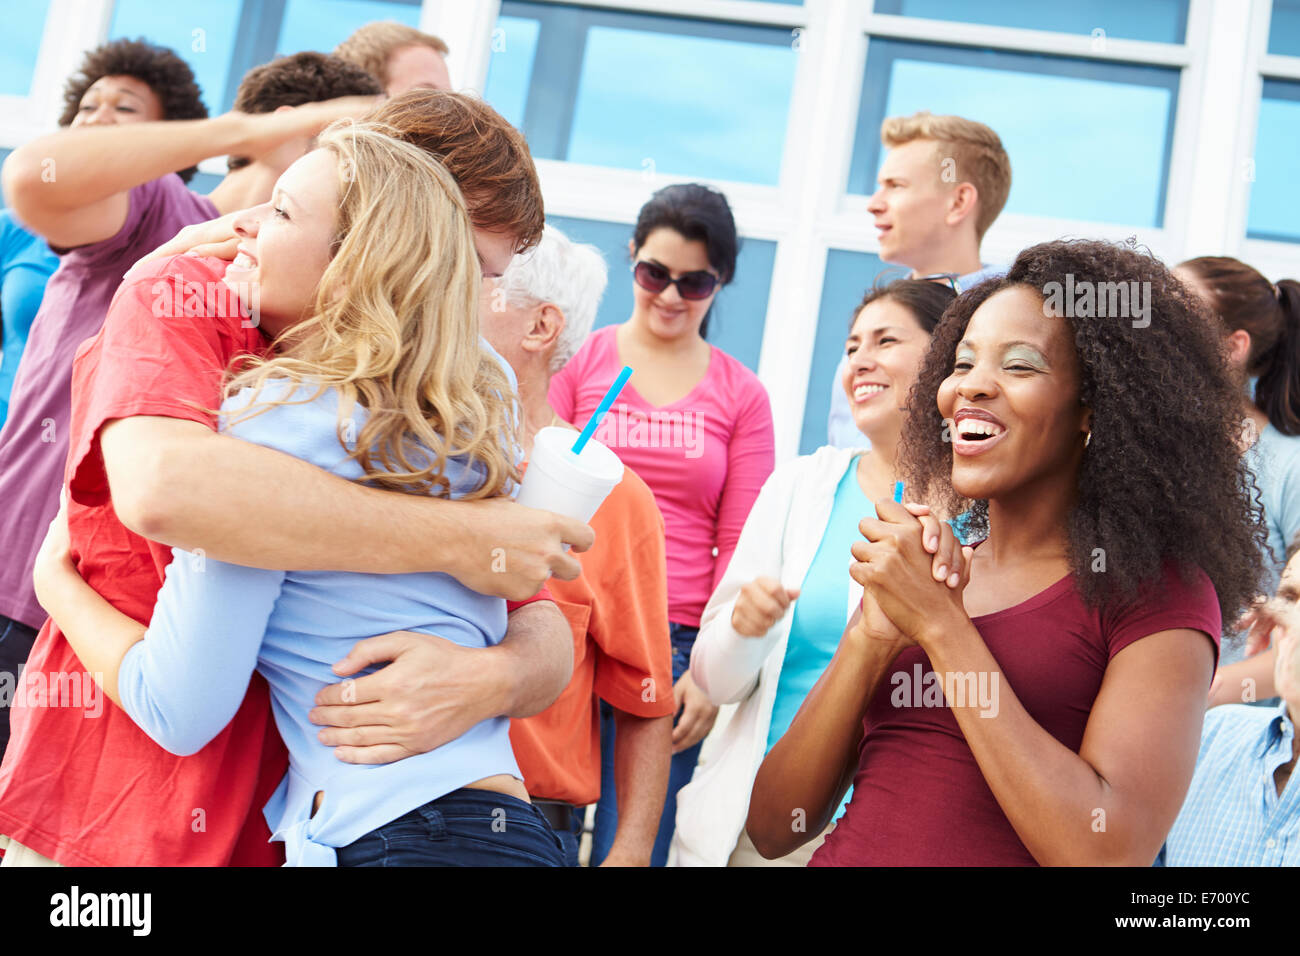 Spectators Celebrating At Outdoor Sports Event - Stock Image